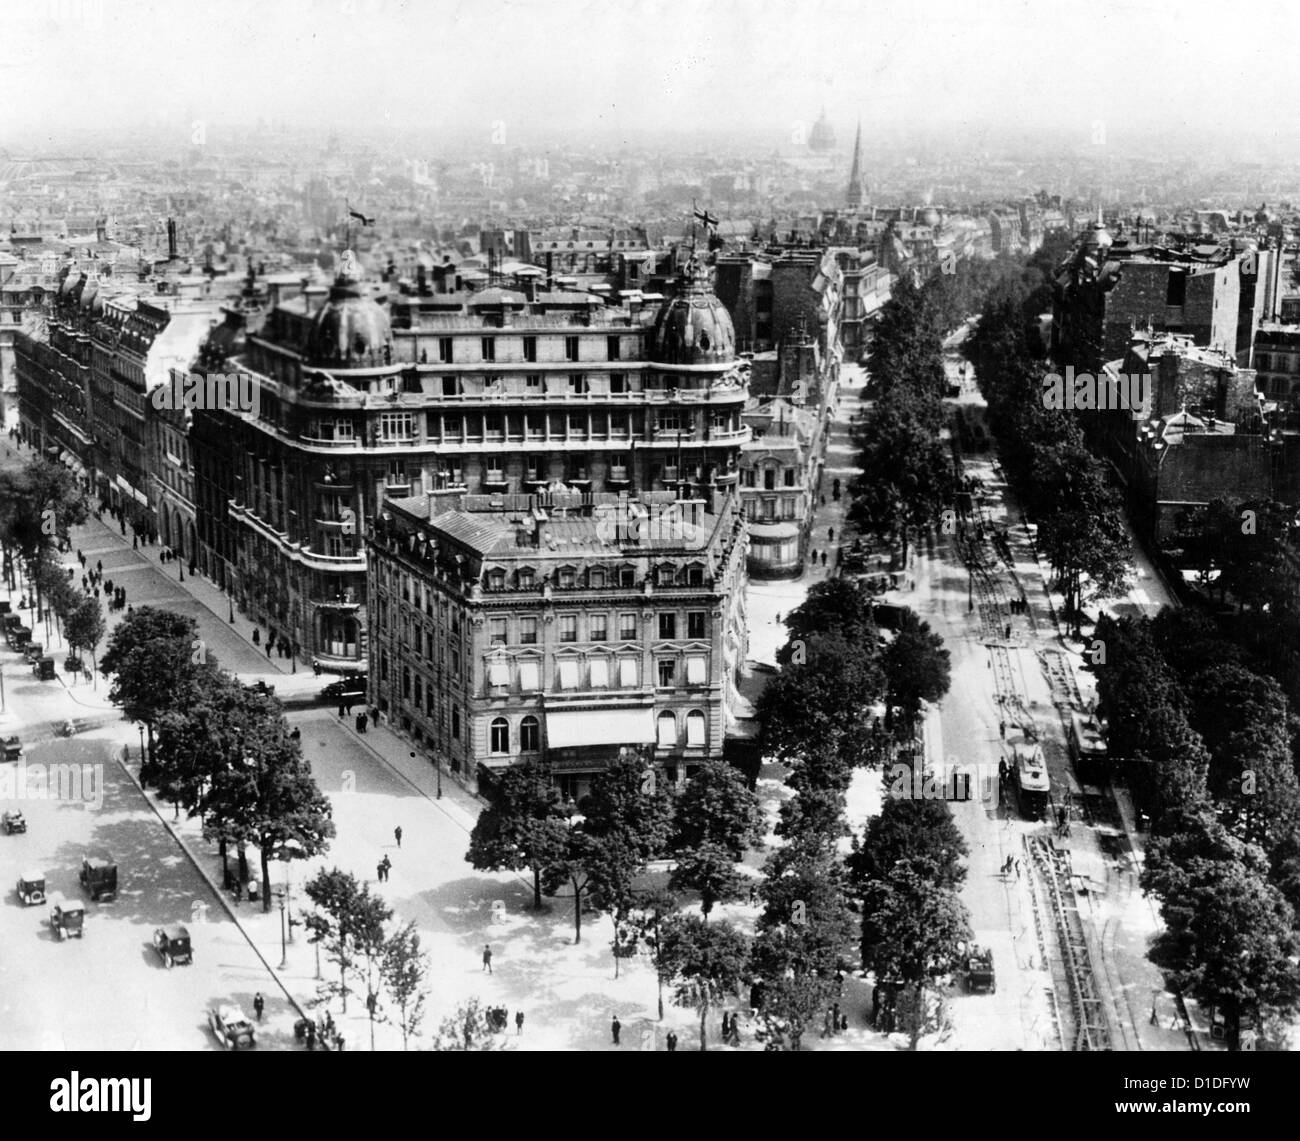 View of Avenue Marceau (r) and Champs Elysees (l) from Arc de Triomphe on Place de l'Etoile (today's Place - Stock Image